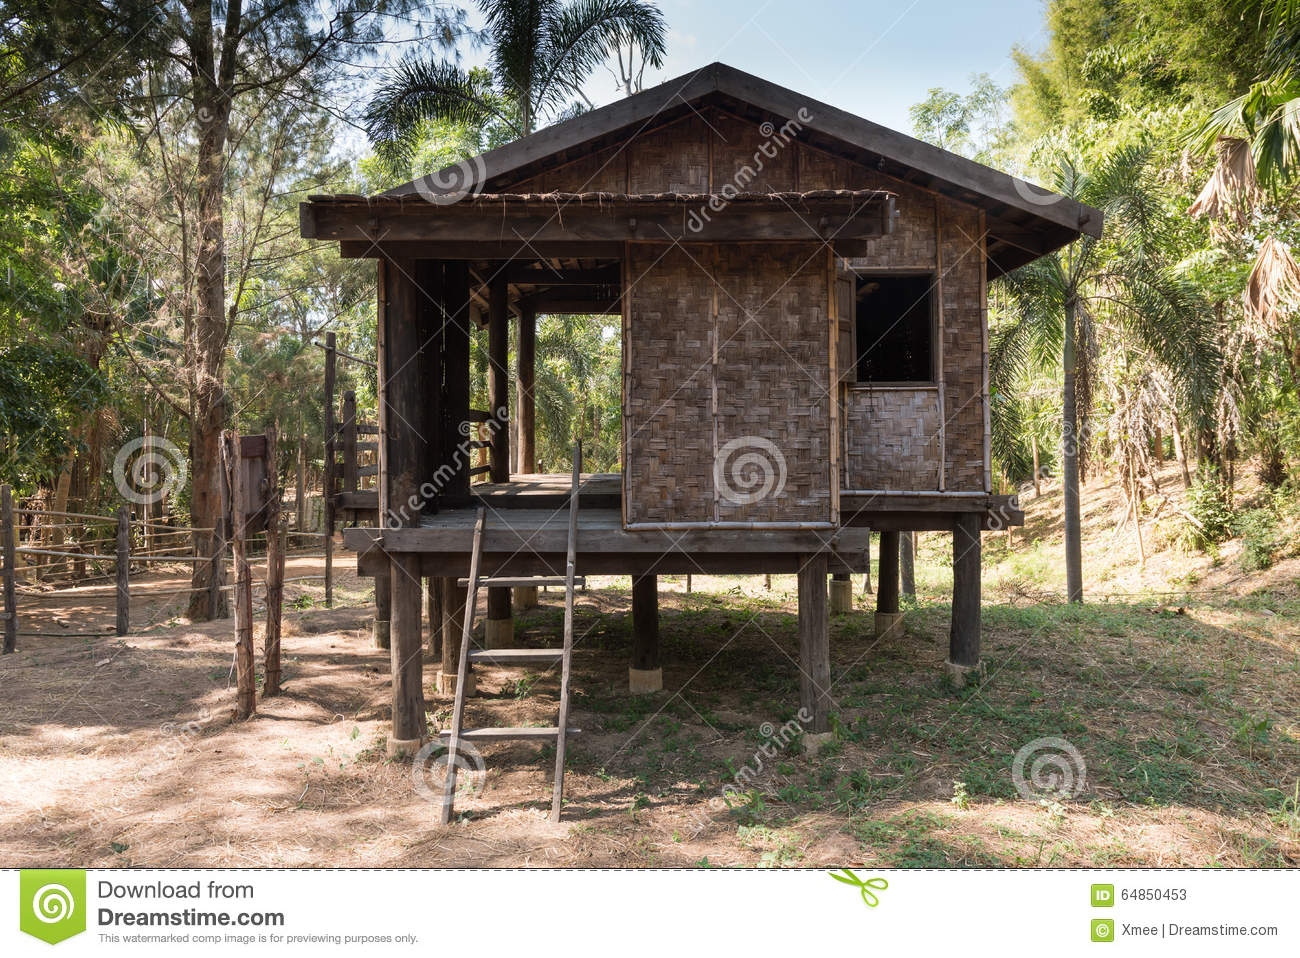 Superior Traditional Thai Rustic Wooden House On Garden,wooden Hut Stock Photos